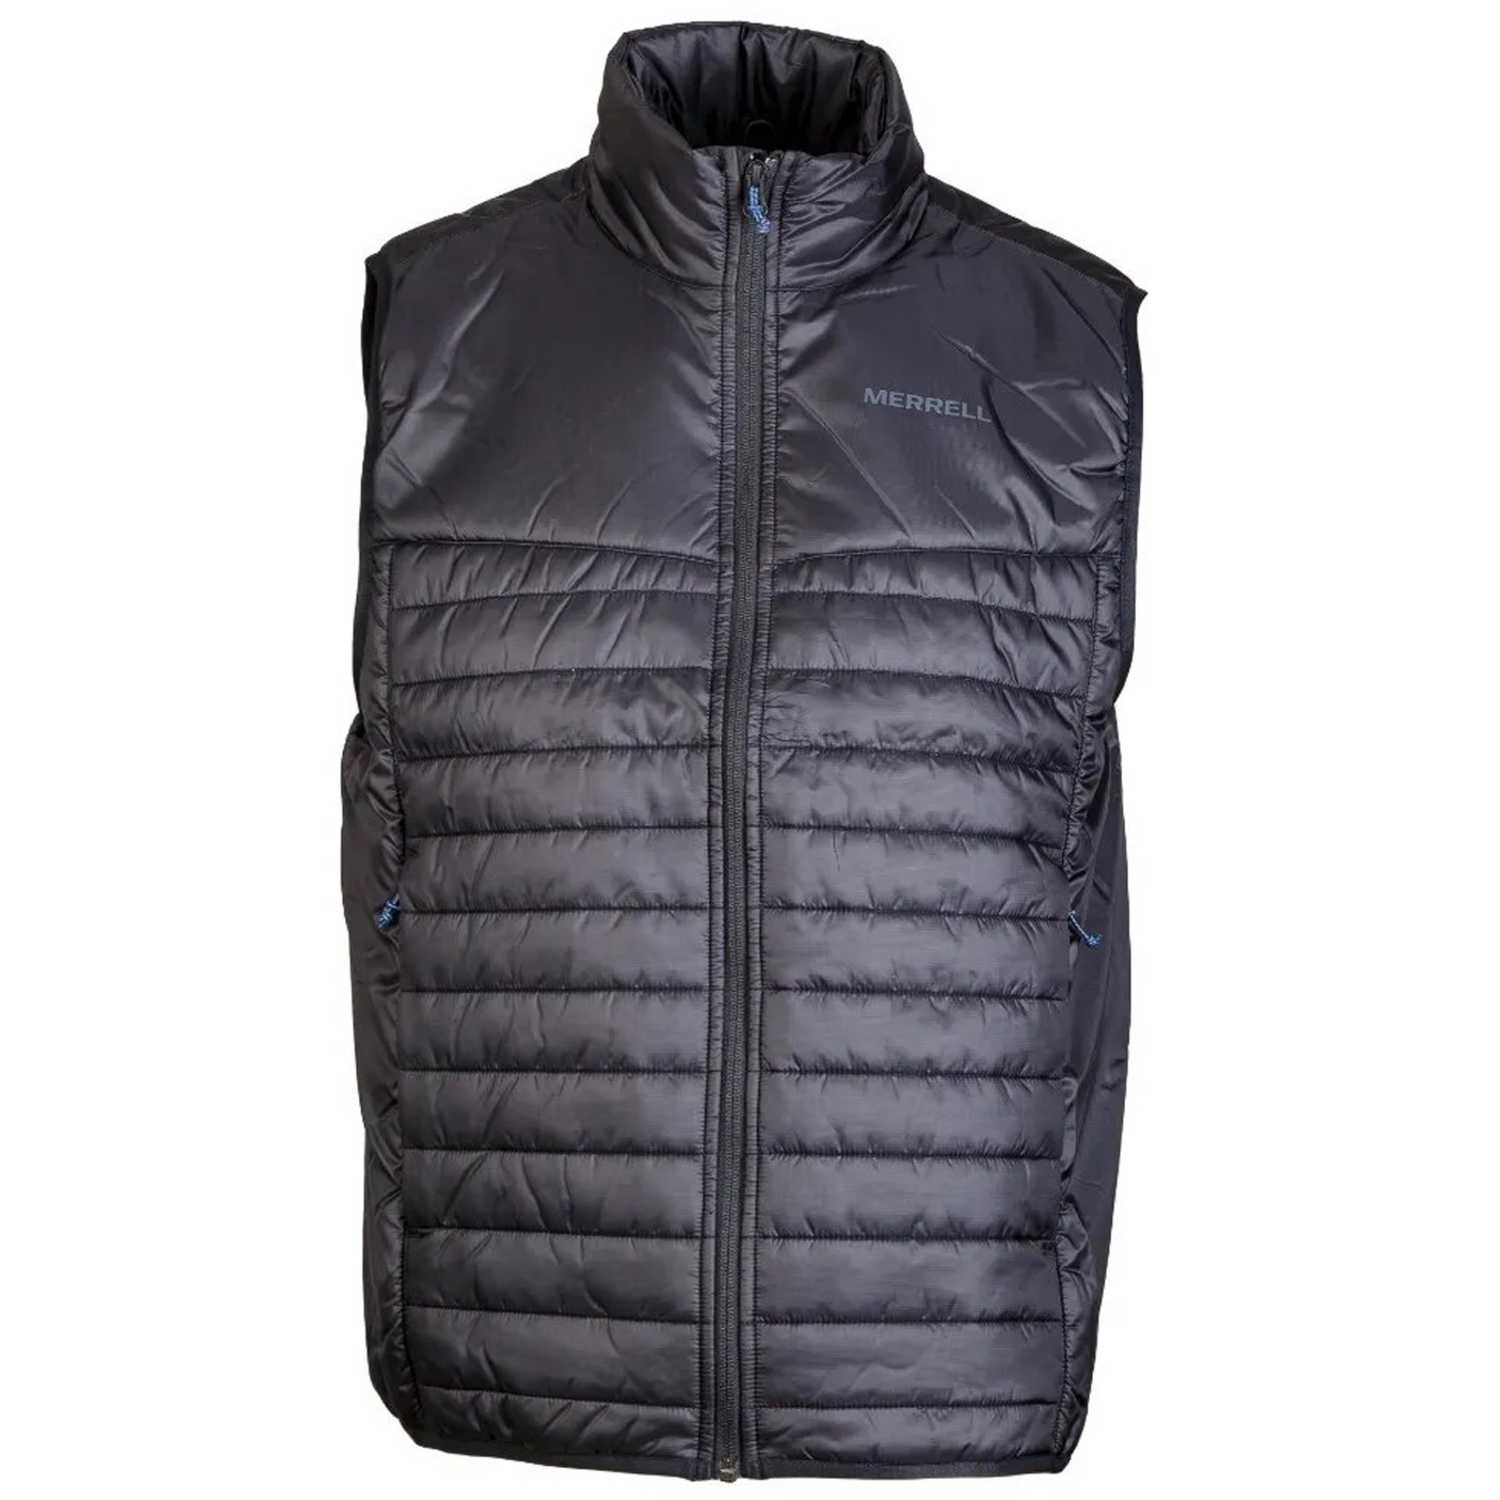 Merrell entrada insulated vest Negro Chalecos